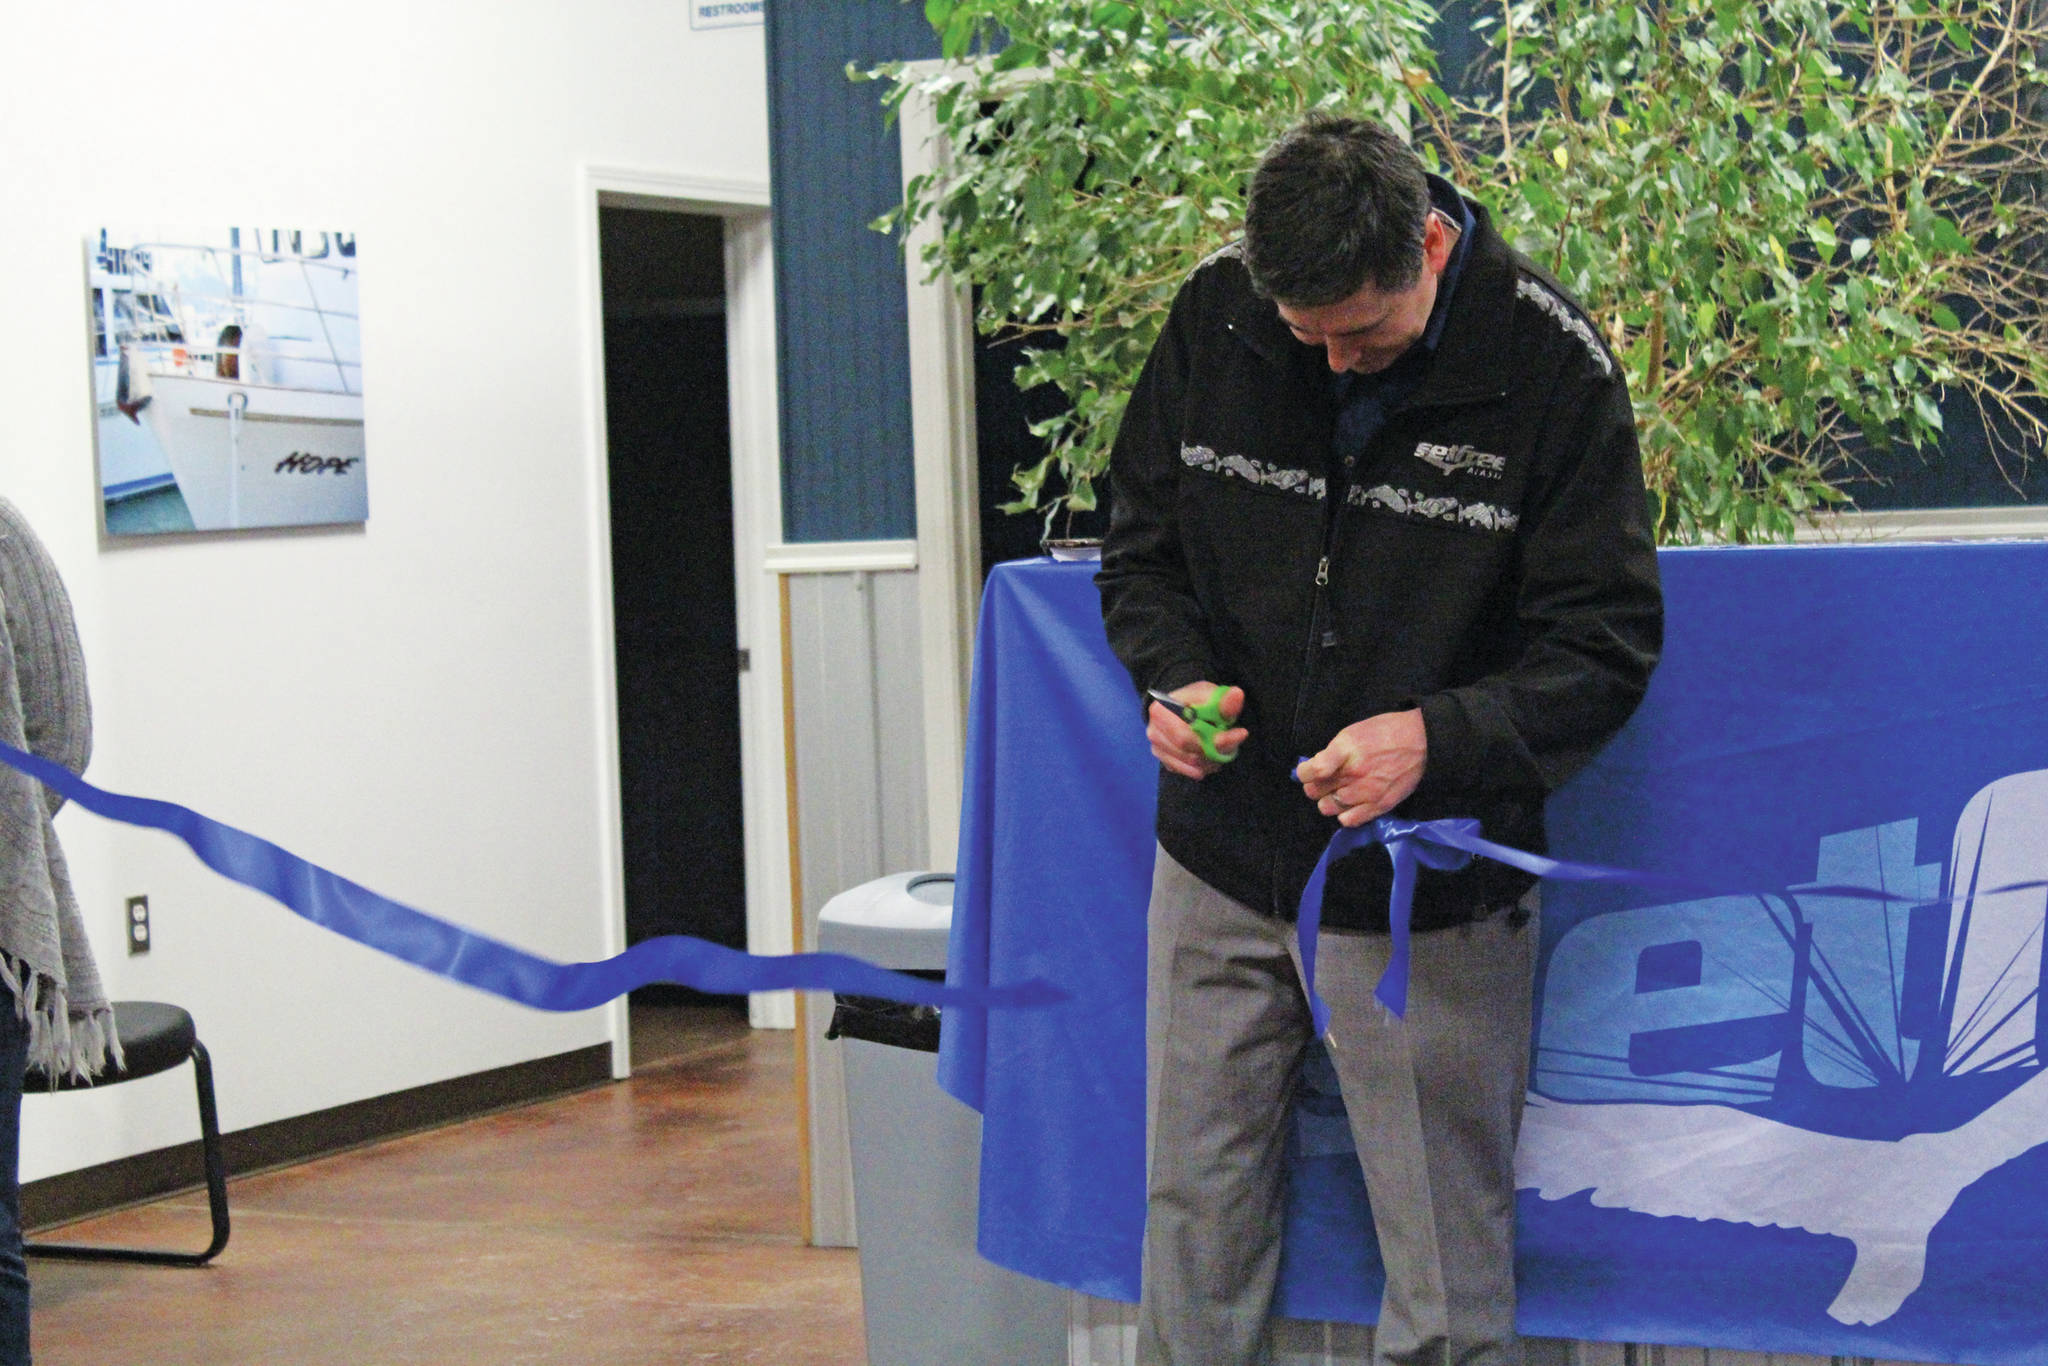 Josh Garvey, a member of Set Free Alaska's board of directors, cuts the ribbon celebrating the opening of the faith-based addiction treatment nonprofit's outpatient services building on Ocean Drive on Monday, Jan. 13, 2020 in Homer, Alaska. (Photo by Megan Pacer/Homer News)